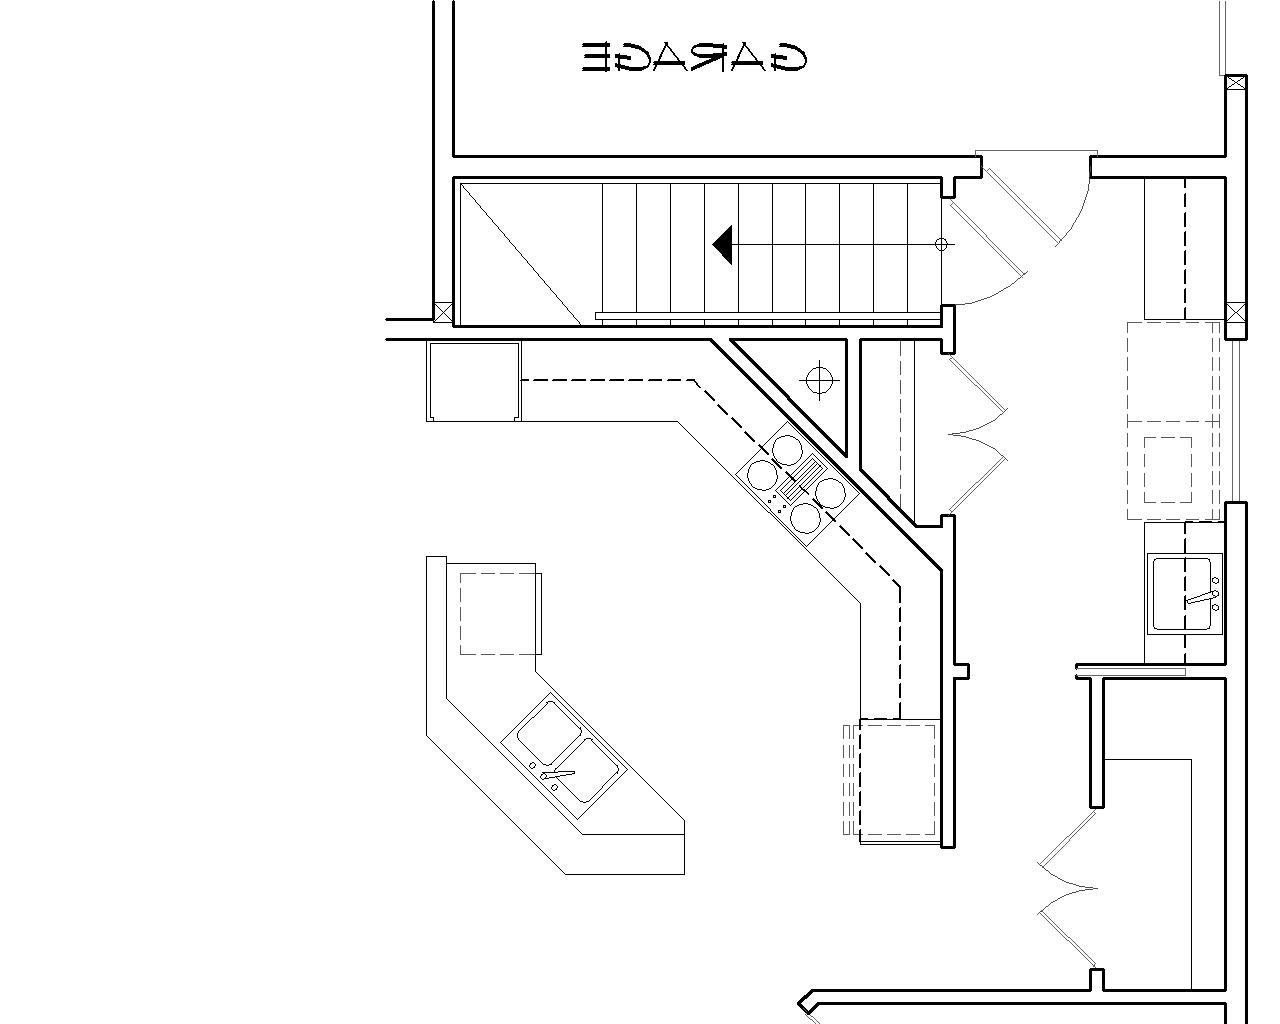 Basement Stair Location image of Featured House Plan: BHG - 5258